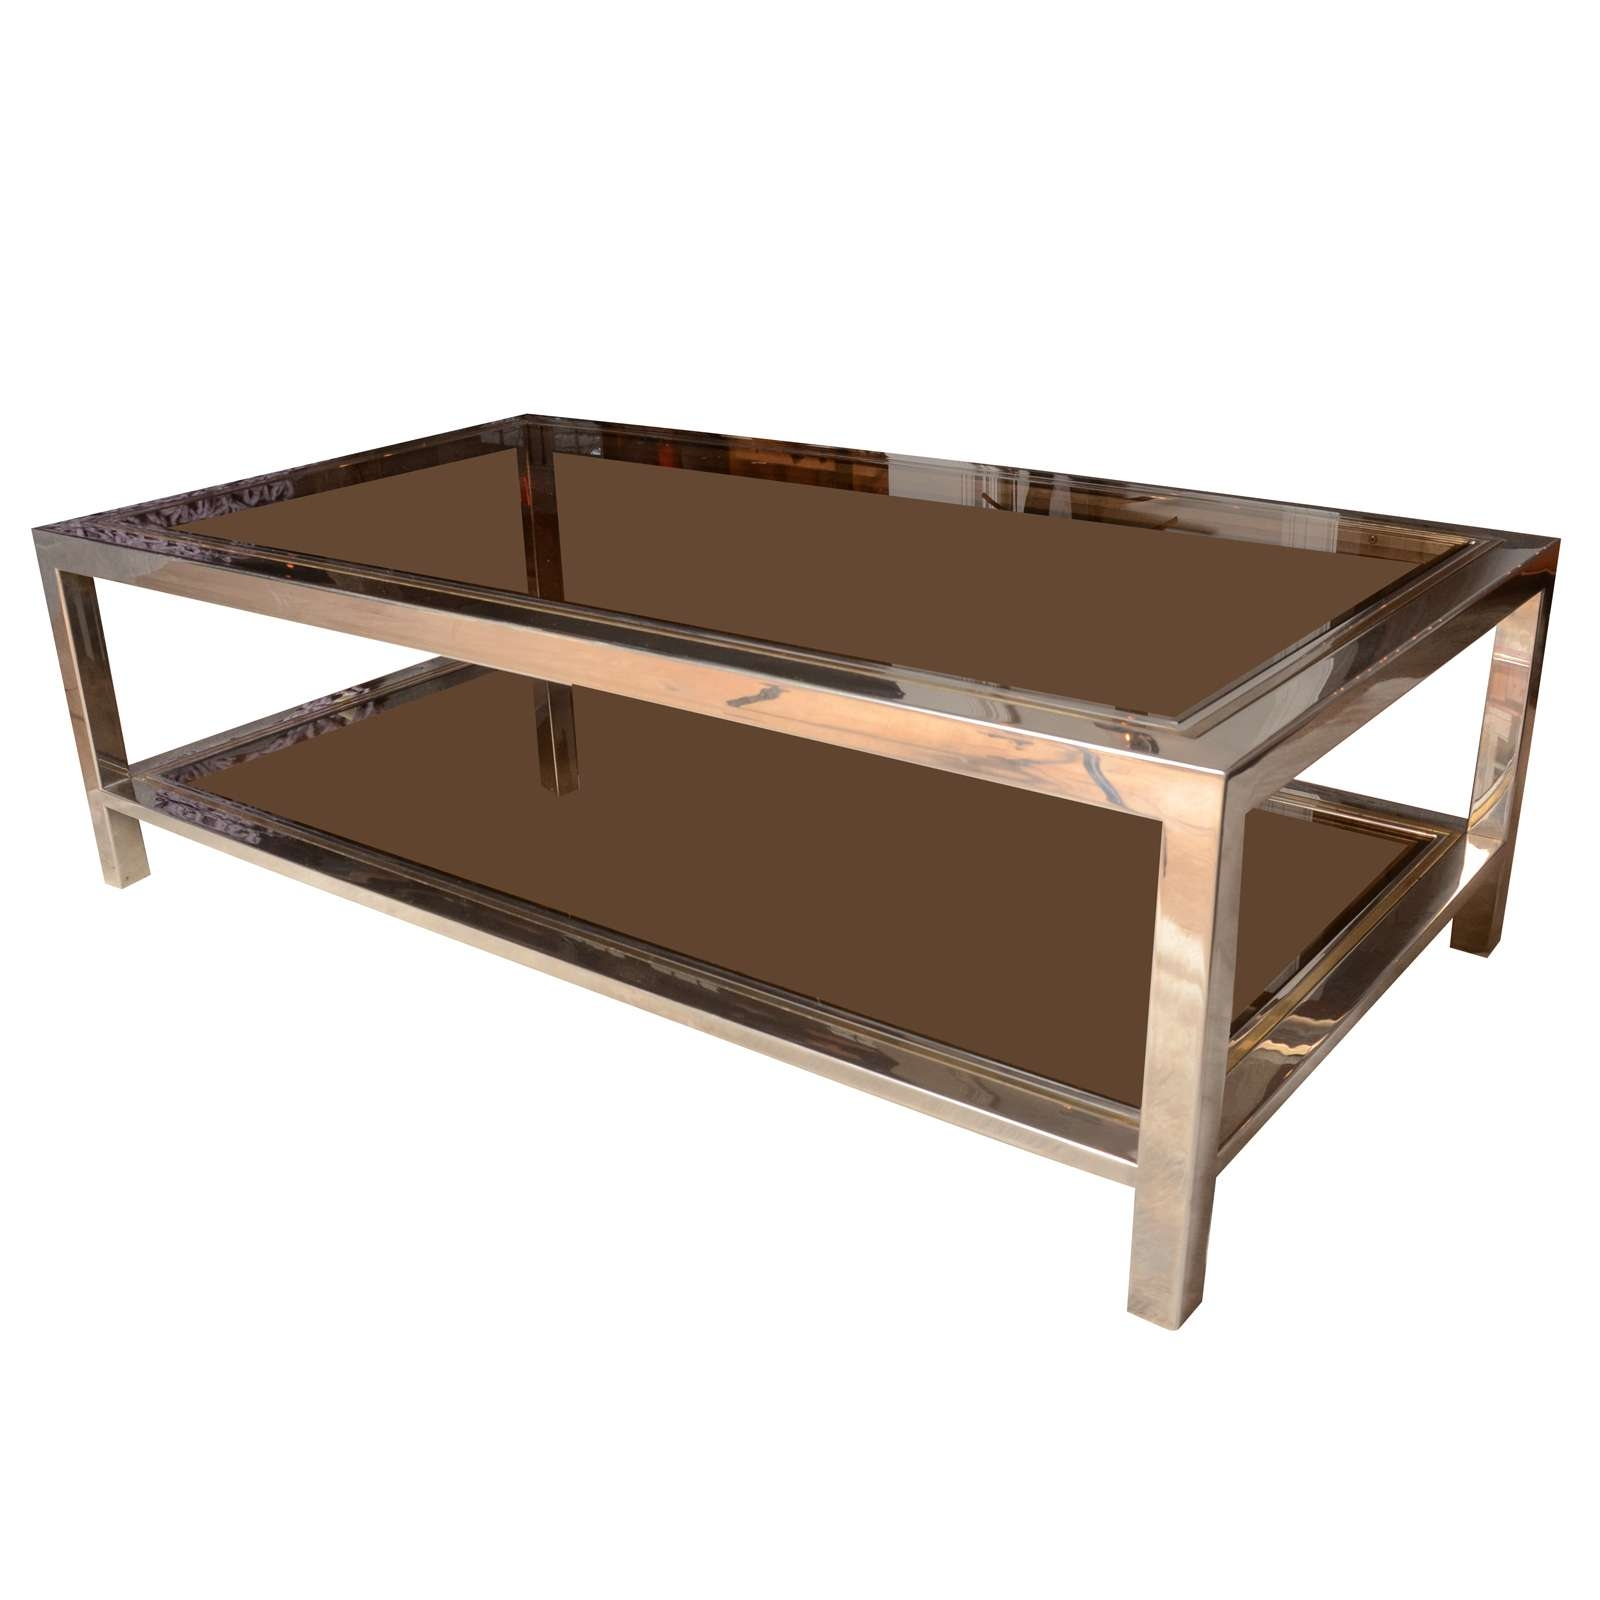 Most Recent Metal Coffee Tables With Glass Top Inside Decorations : Modern Glass Top Coffee Tables With Metal Base (View 17 of 20)